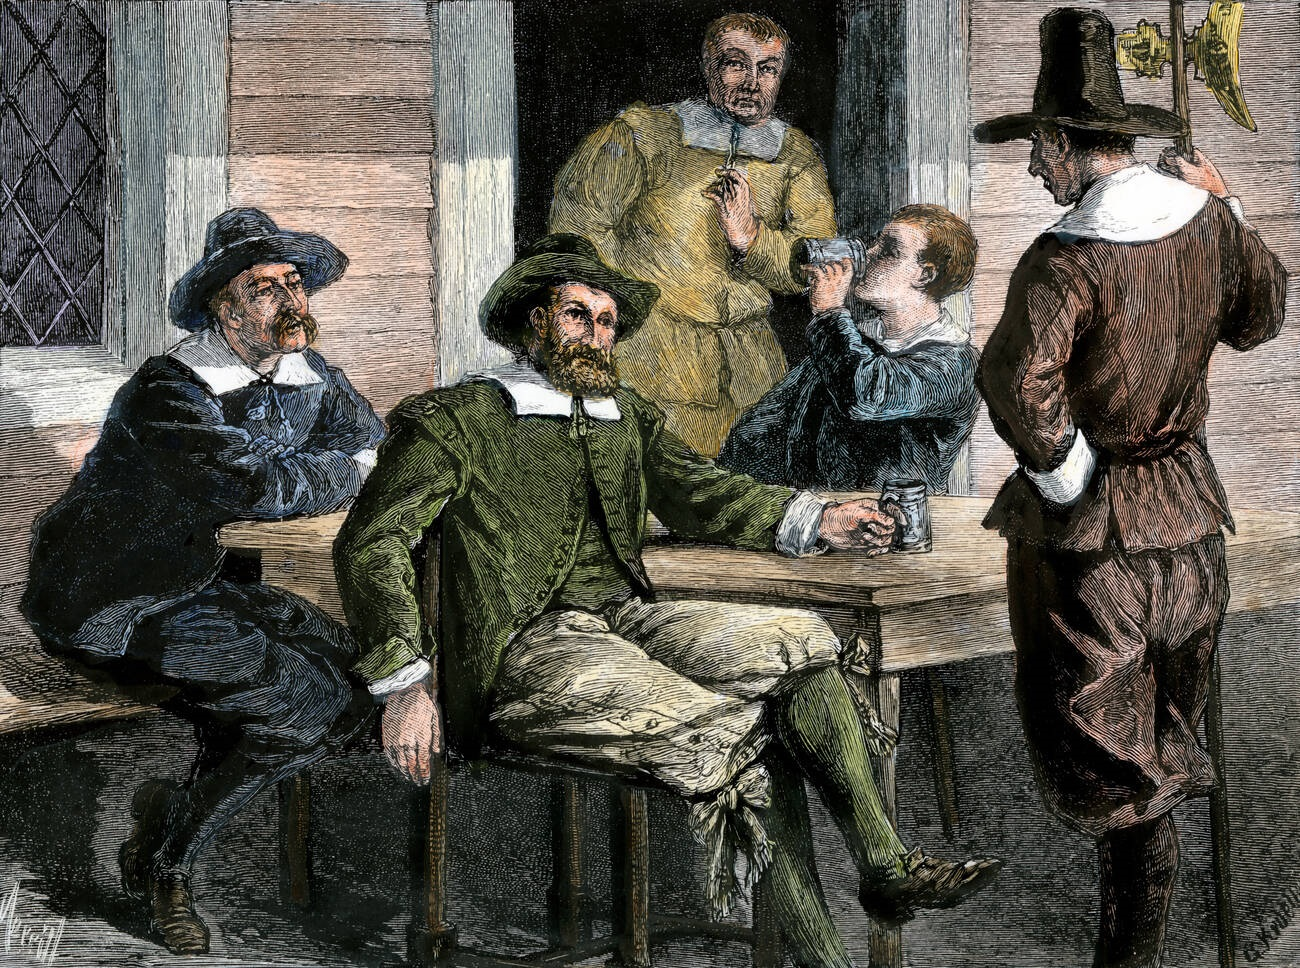 Puritans drinking from pewter mugs in colonial Massachusetts